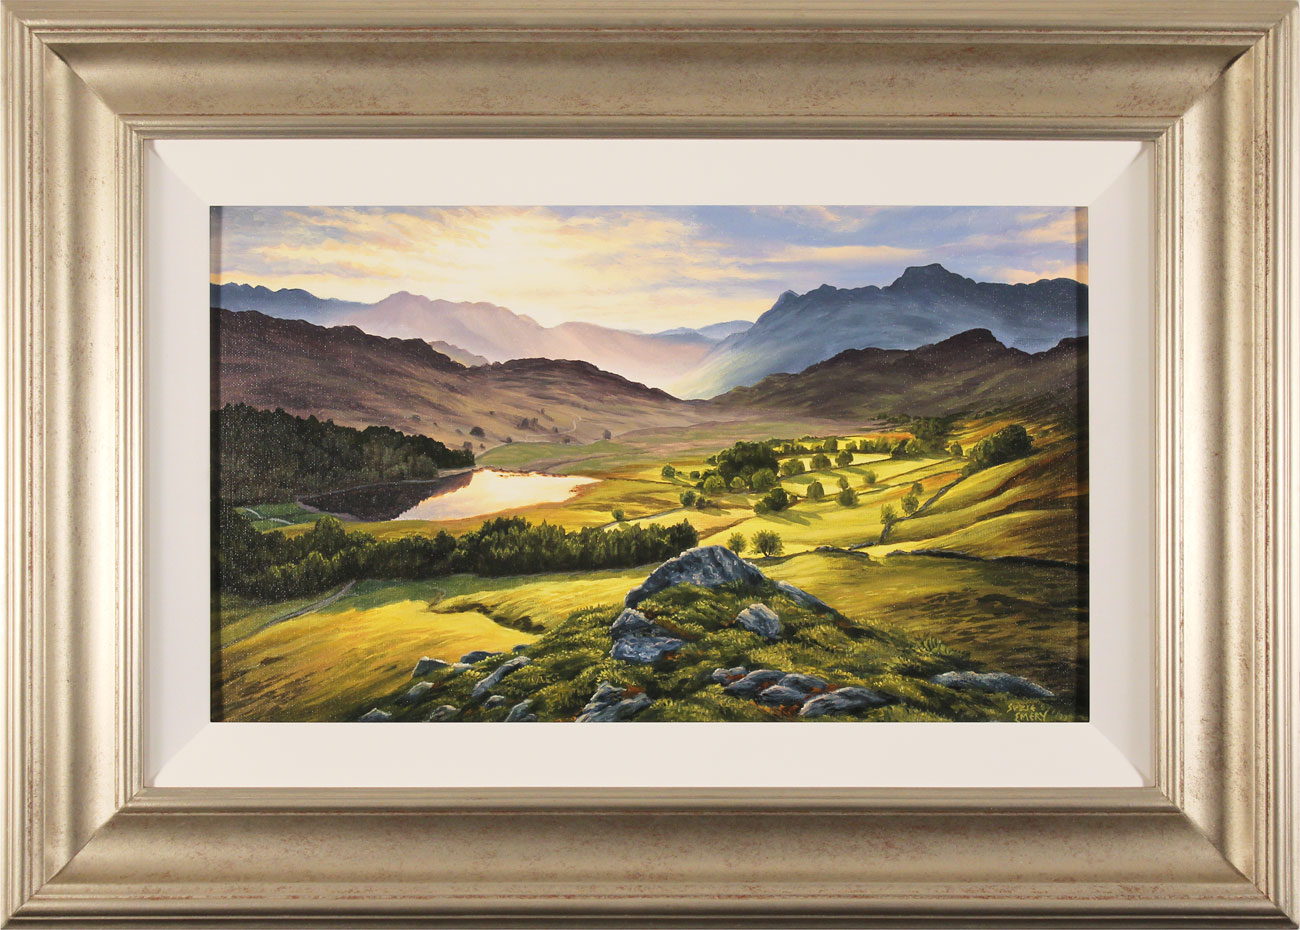 Suzie Emery, Original acrylic painting on board, Langdale Pikes, Lake District, click to enlarge